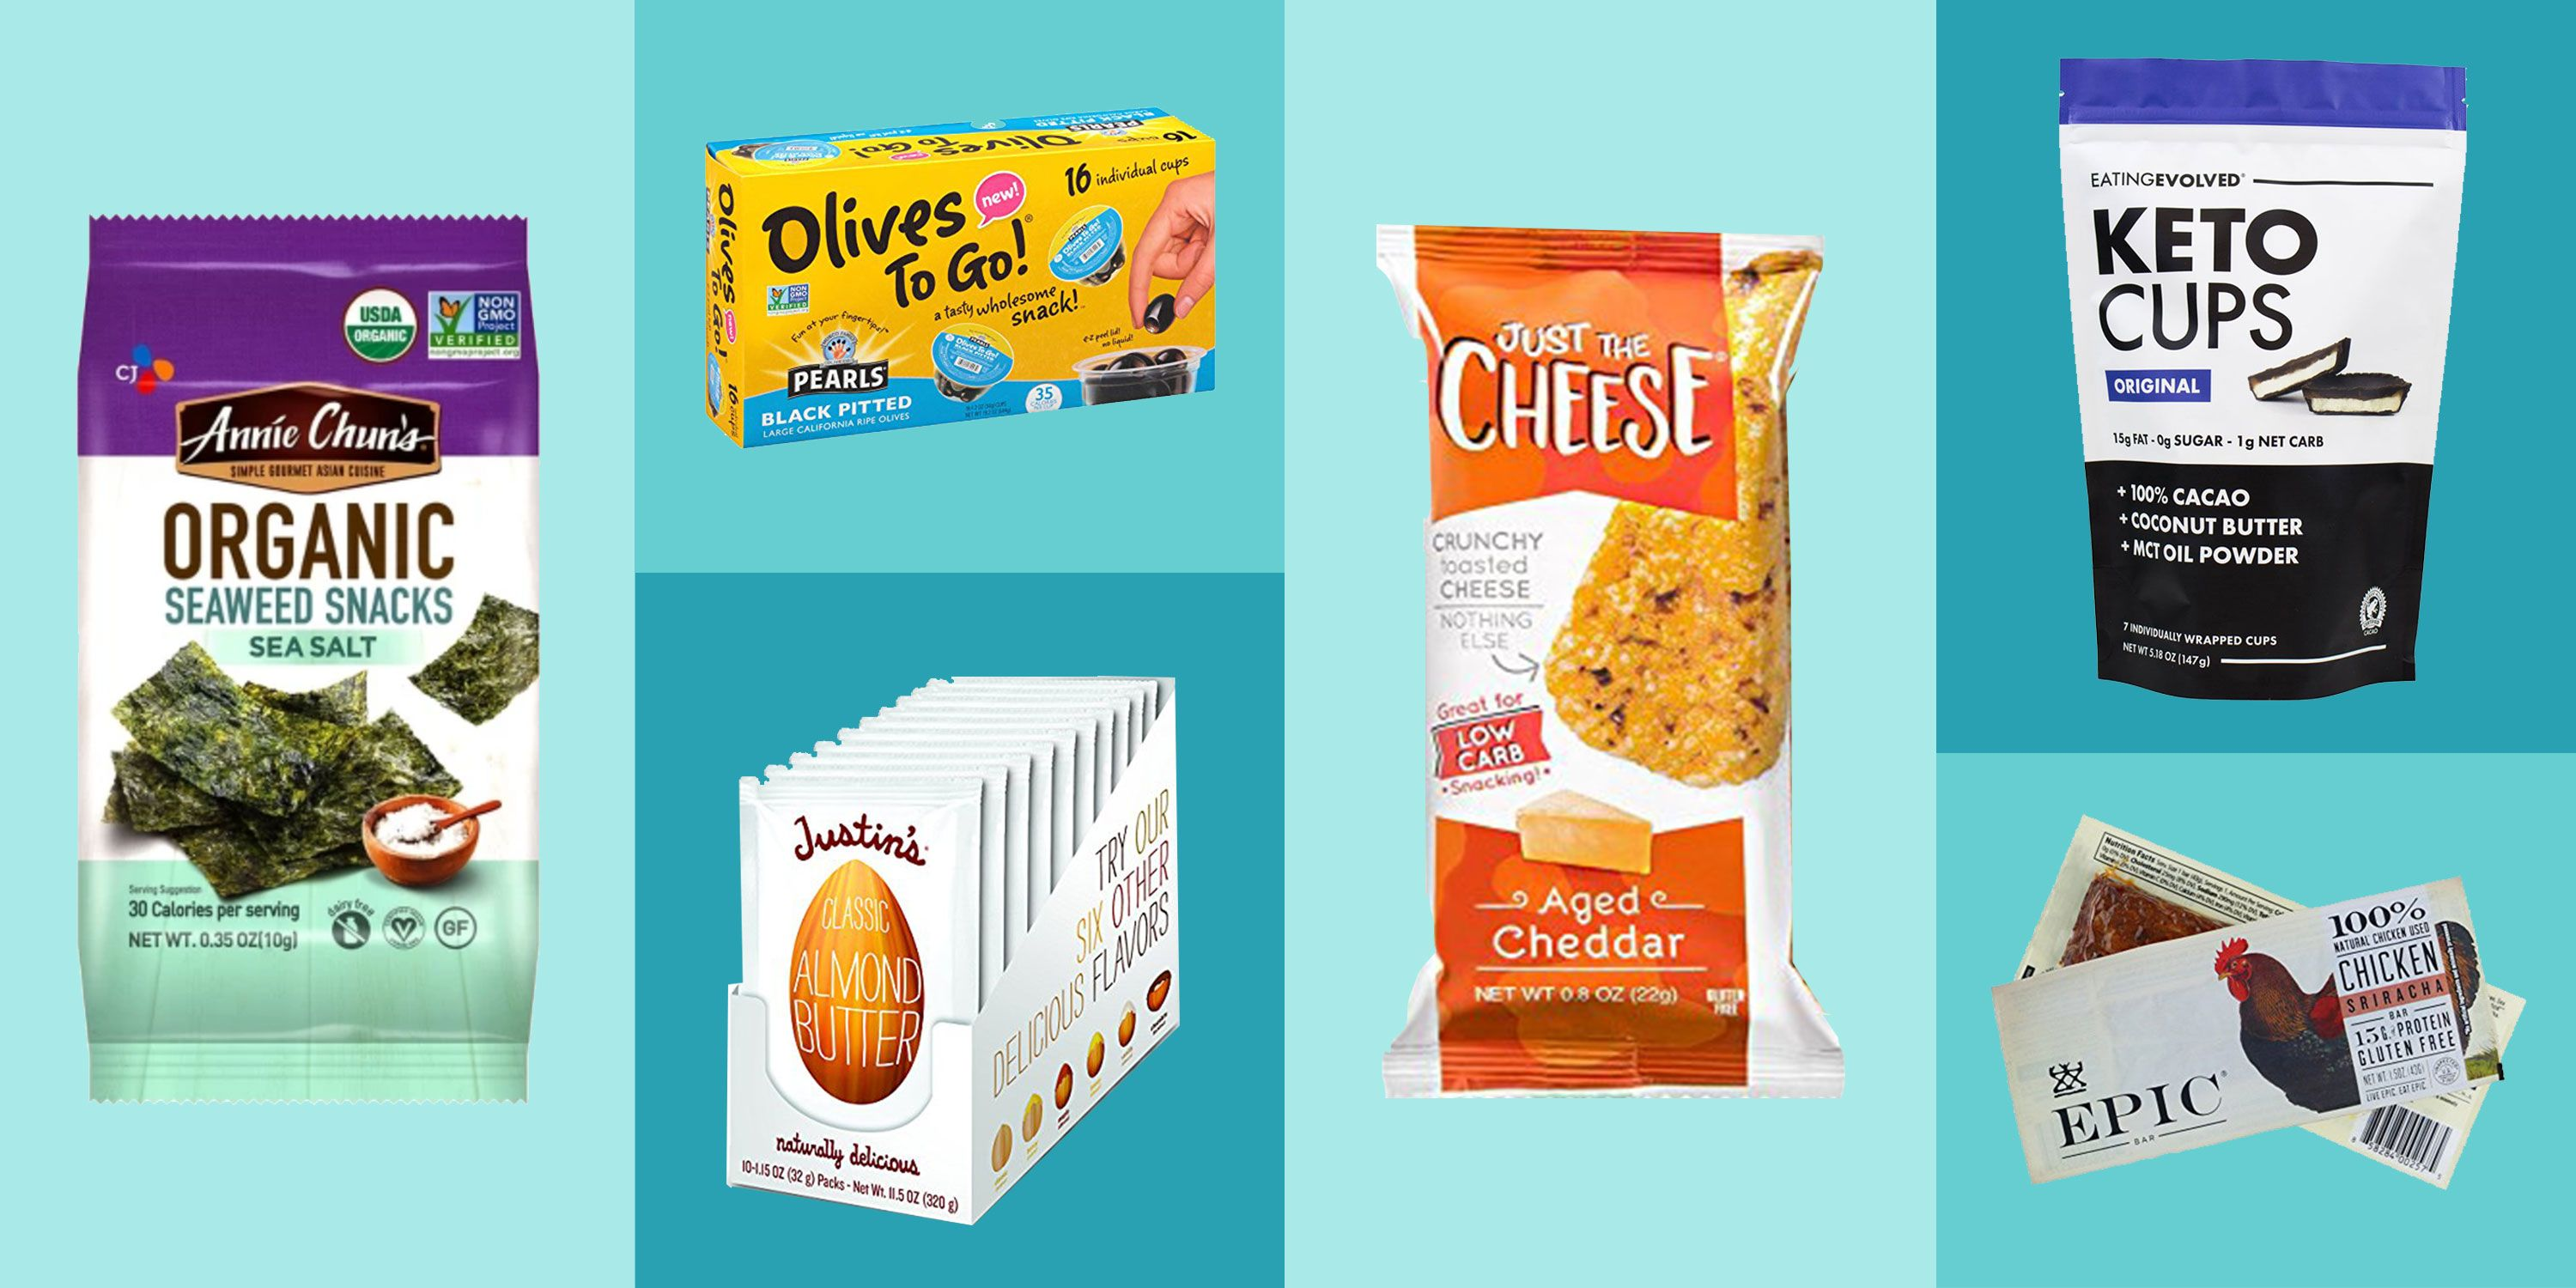 The 10 Best Store Bought Keto Snacks Money Can Buy